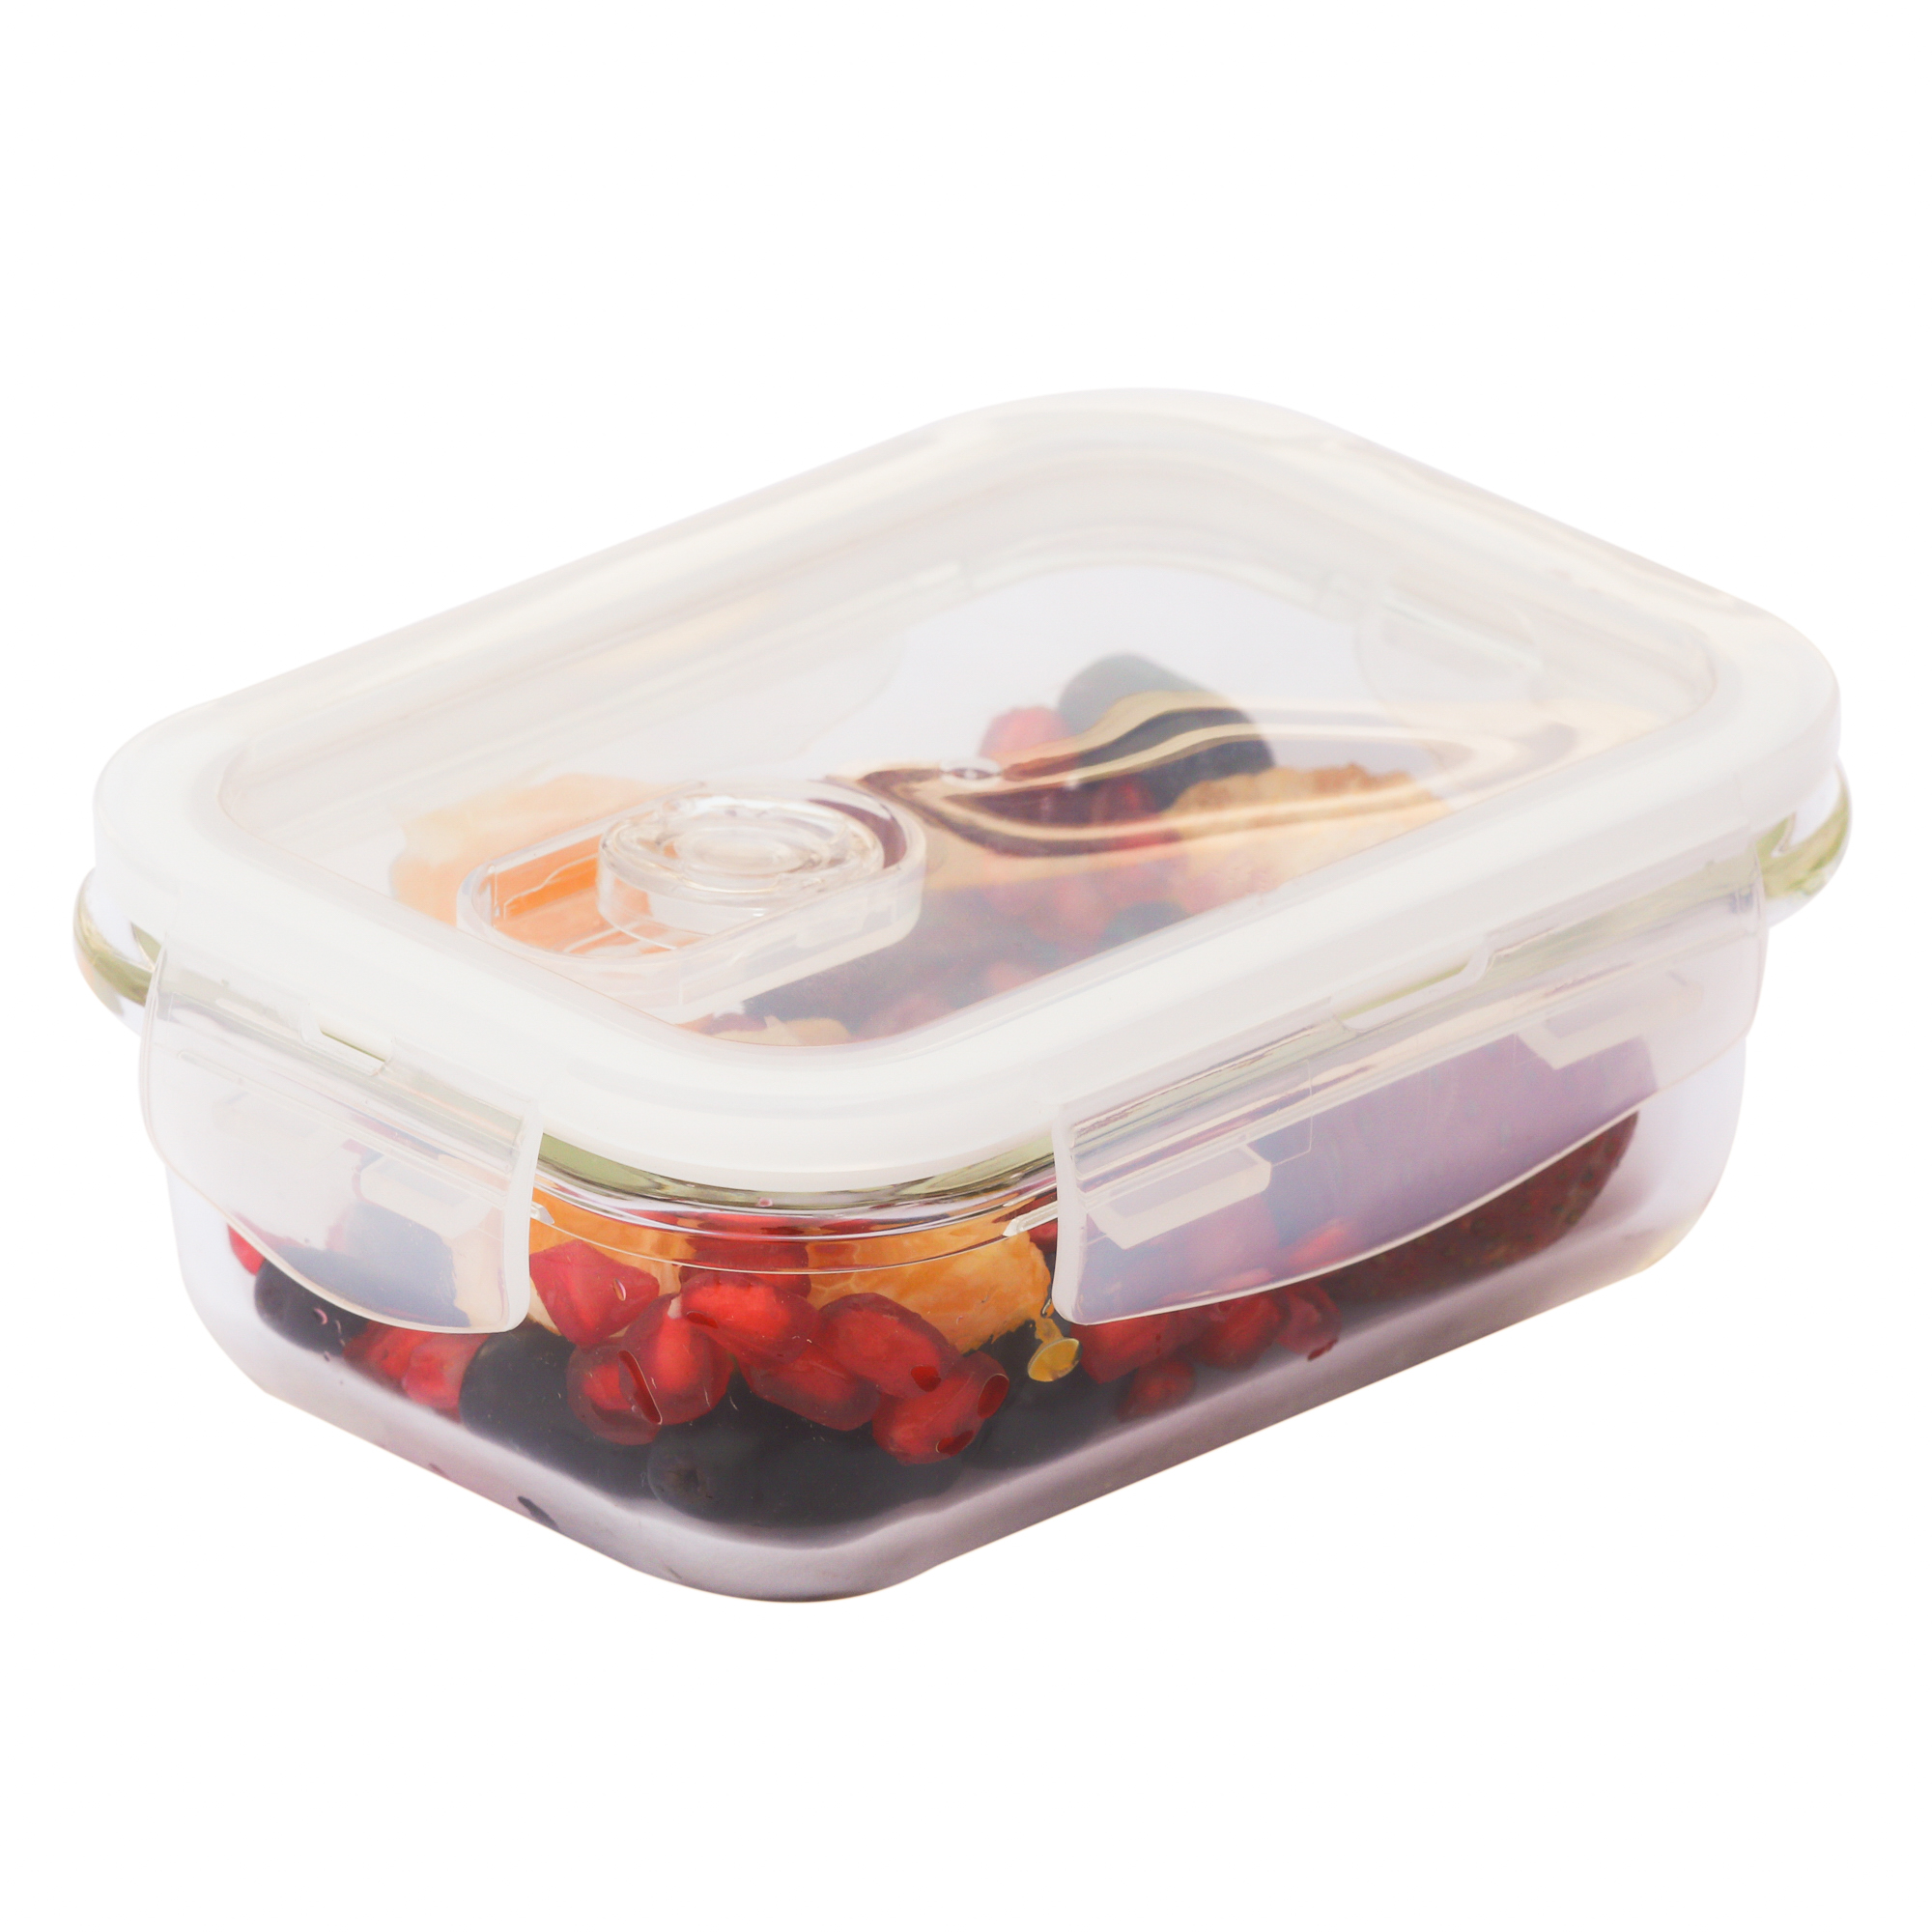 Femora Borosilicate Glass Rectangular Container with Air Vent Lid 400 ML